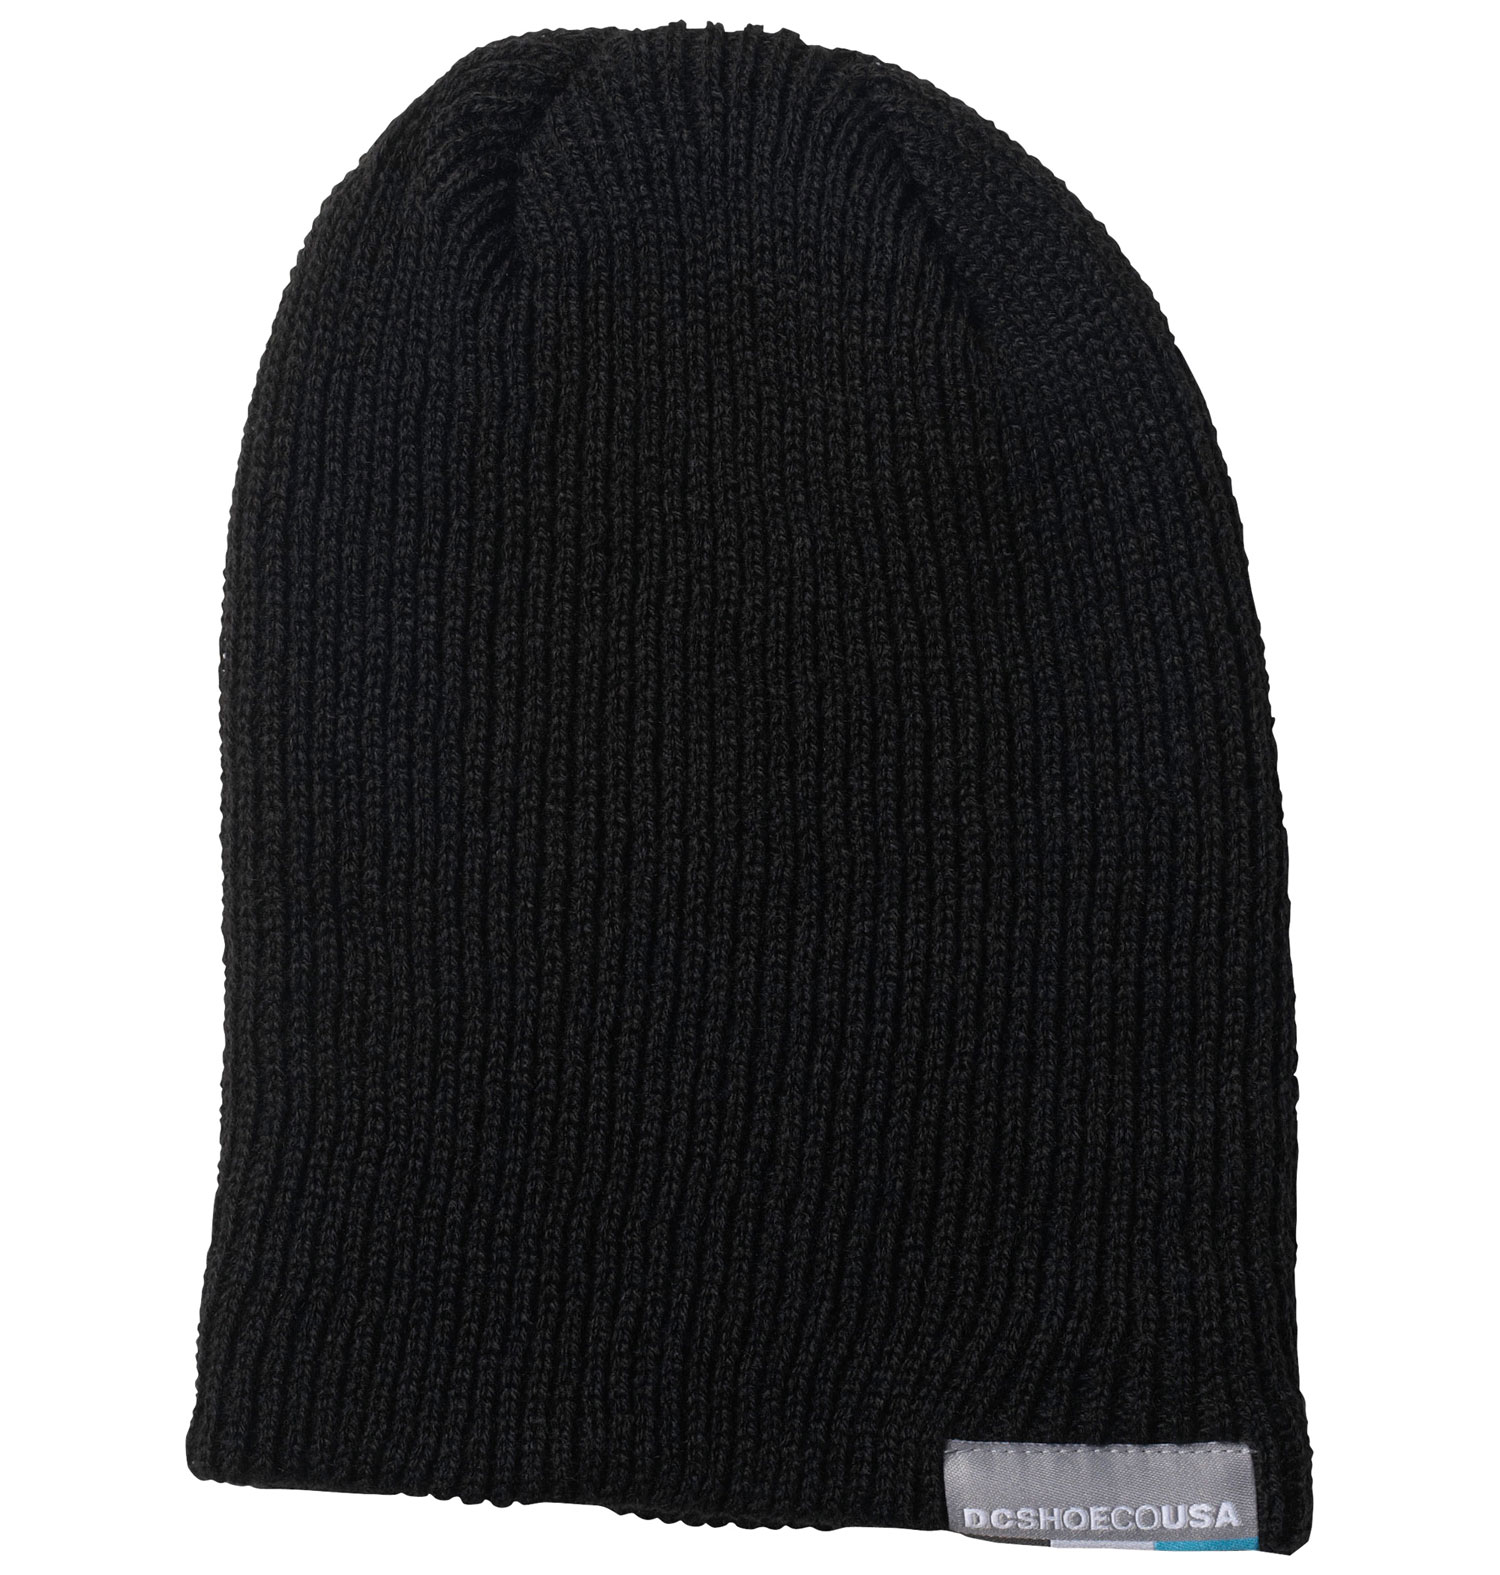 Standard fit beanie with dcshoecousa woven label.Key Features of the DC Yepito Beanie: Standard fit 100% acrylic - $9.95